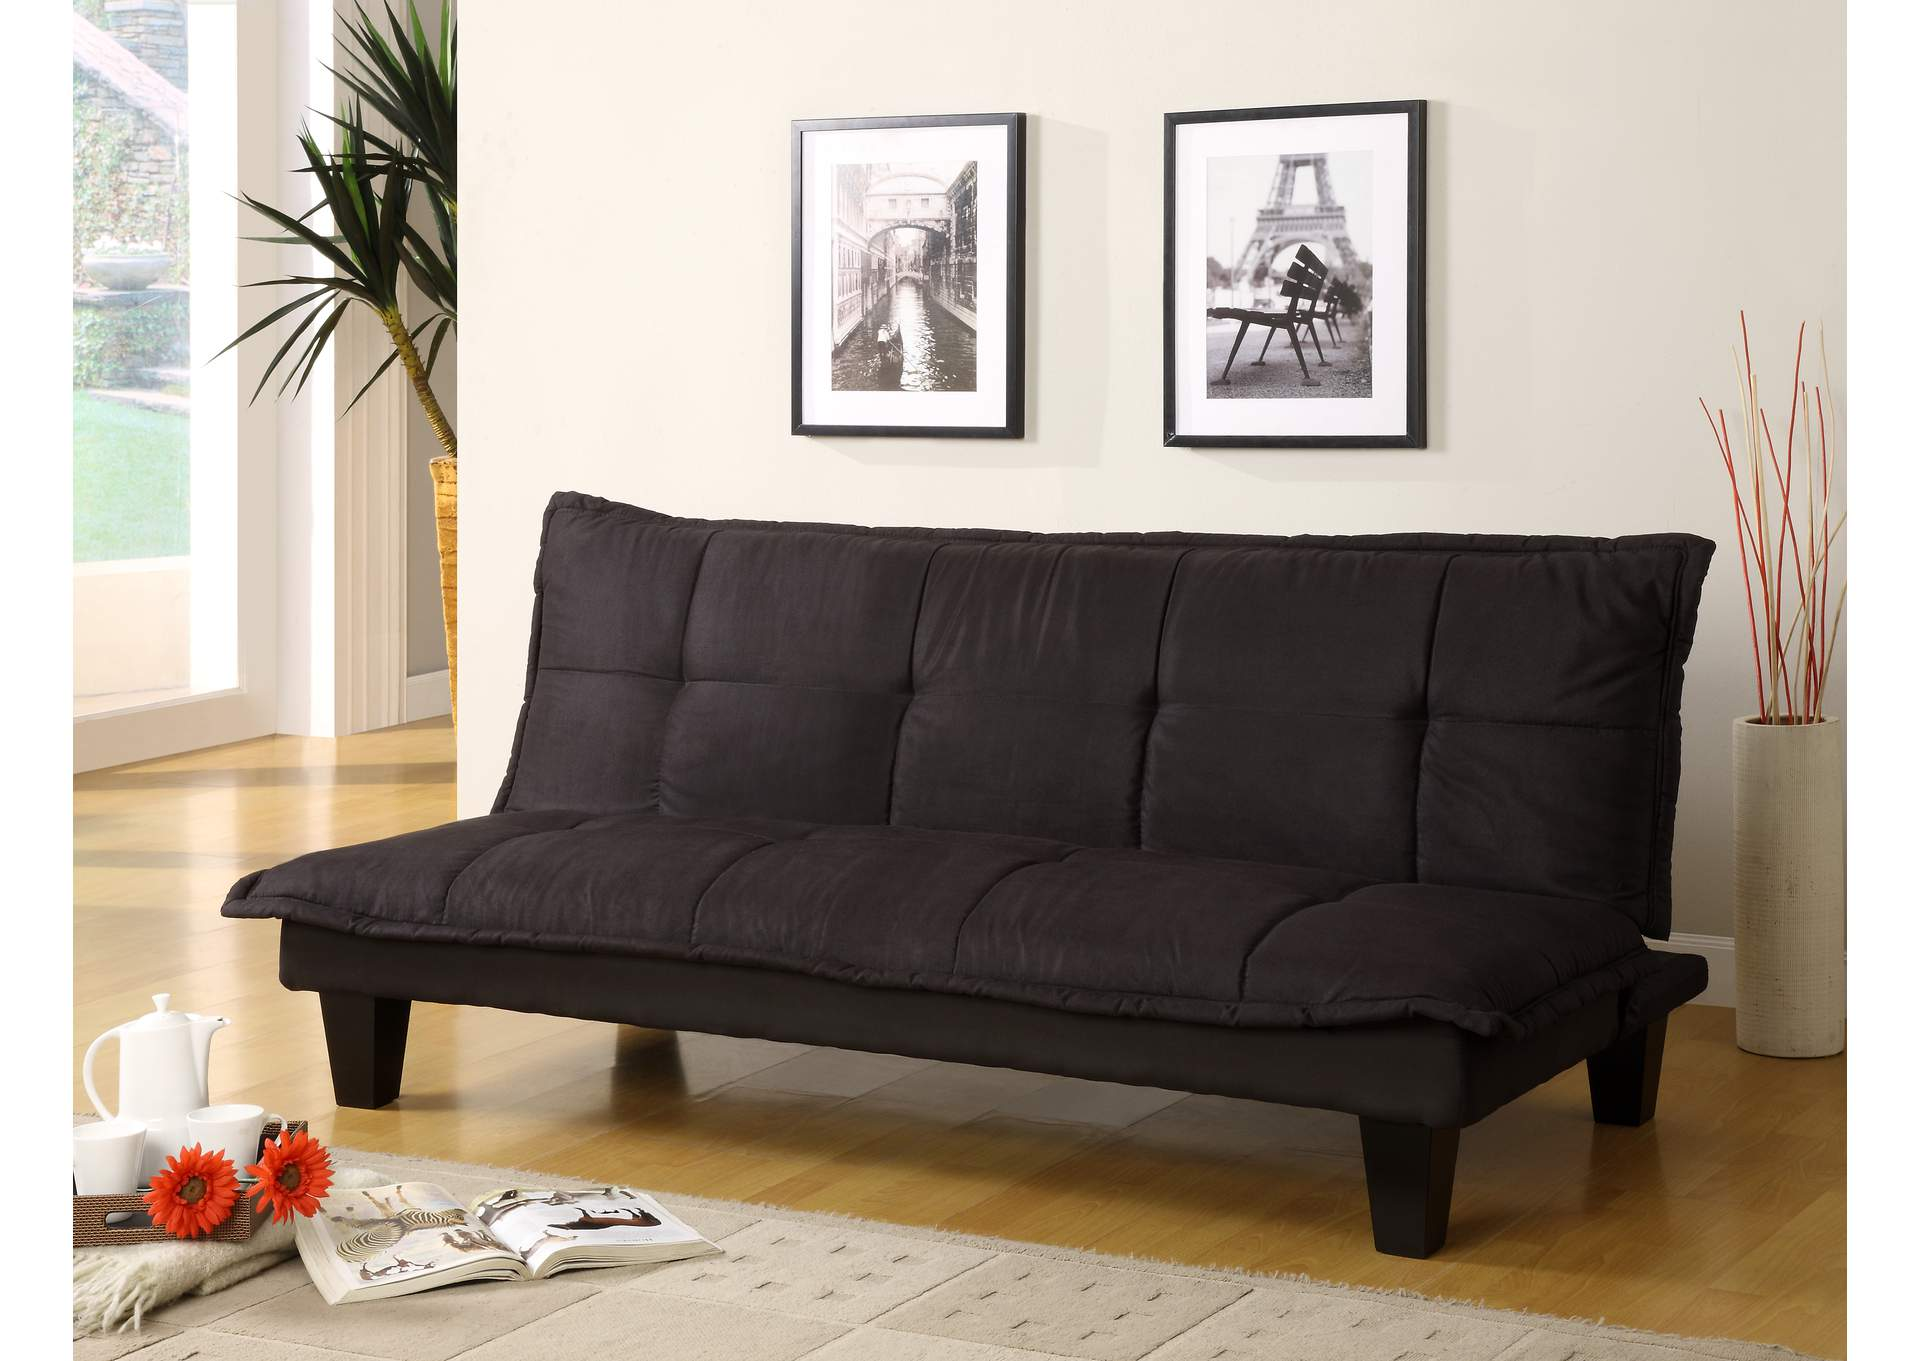 National Furniture Outlet Westwego Model National Furniture Outlet  Westwego La Black Margo Adjustable Sofa